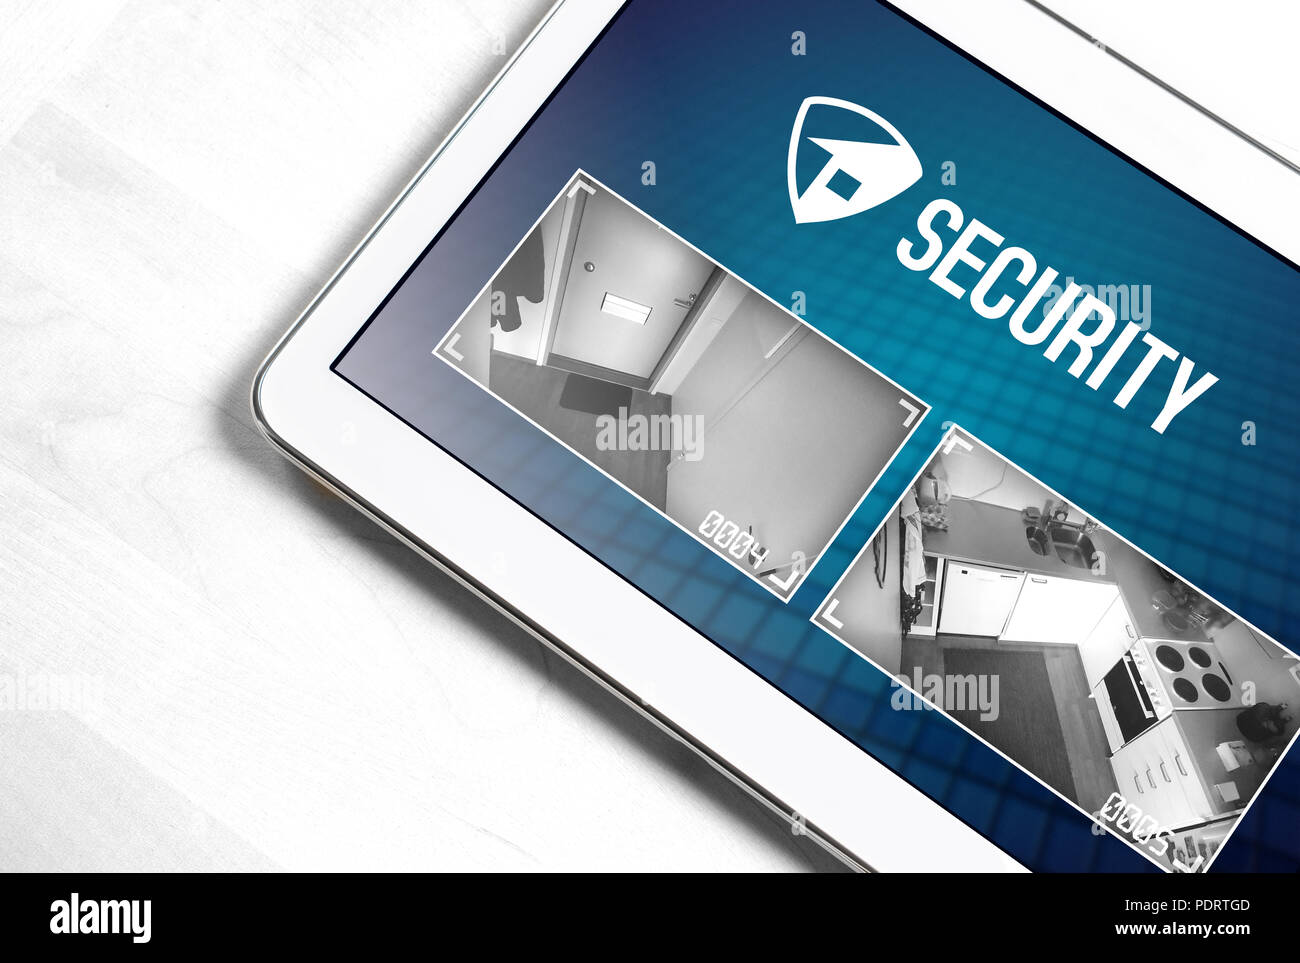 Home security system and application in tablet. Protection and surveillance camera live footage inside a house or apartment. Smart cctv and safety app - Stock Image